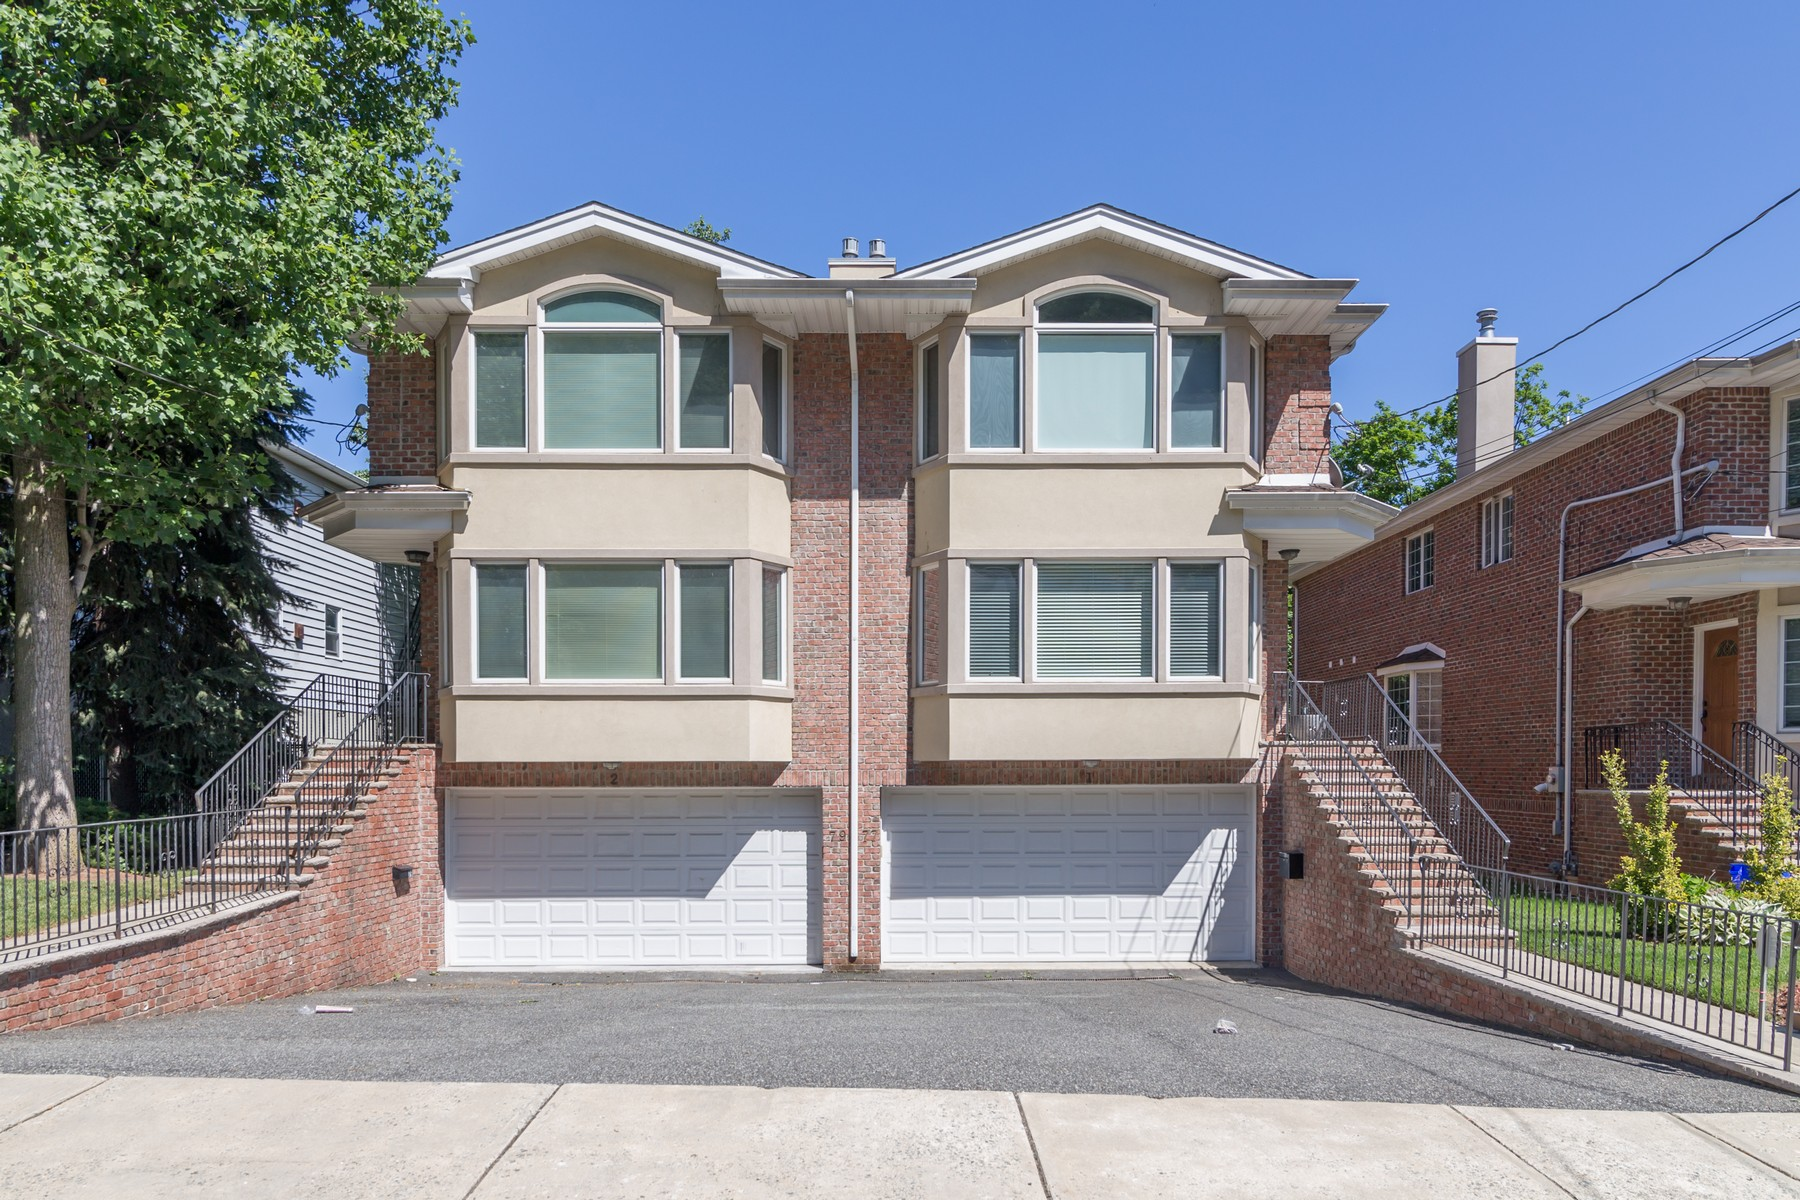 Townhouse for Sale at Three Level Duplex Townhome 77 Myrtle Ave Edgewater, 07020 United States